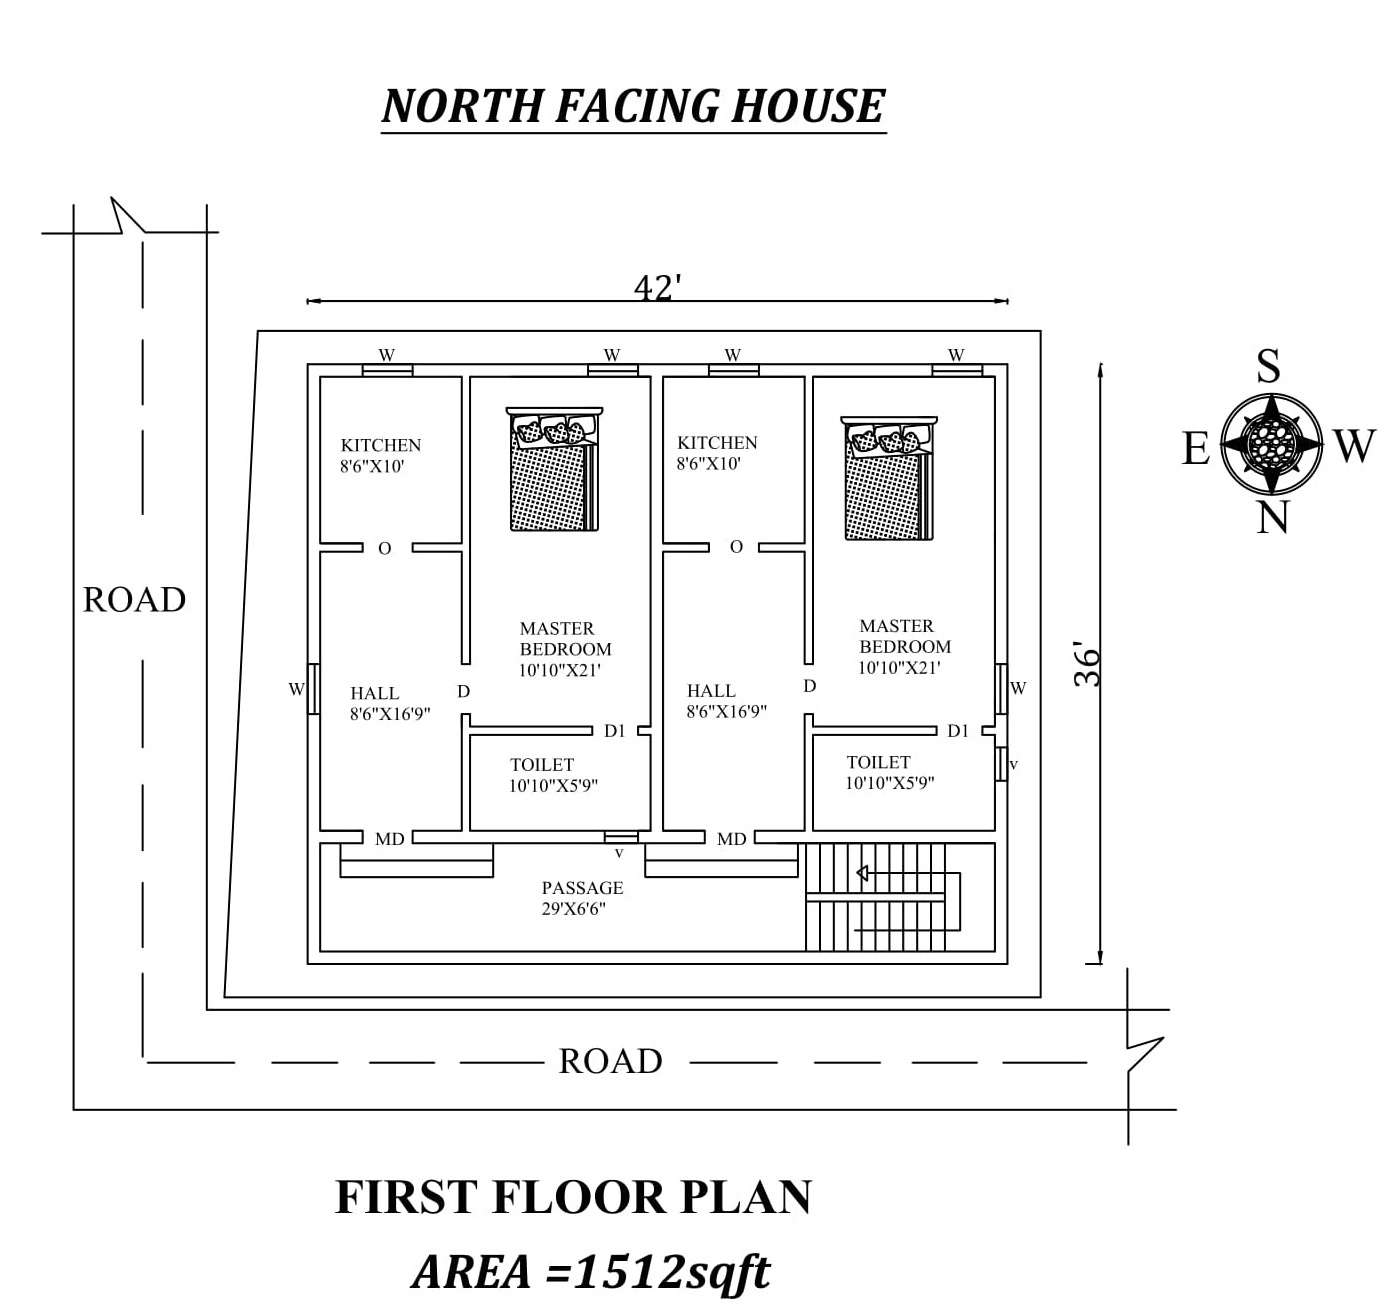 42 x 36 single bhk north facing first floor house plan